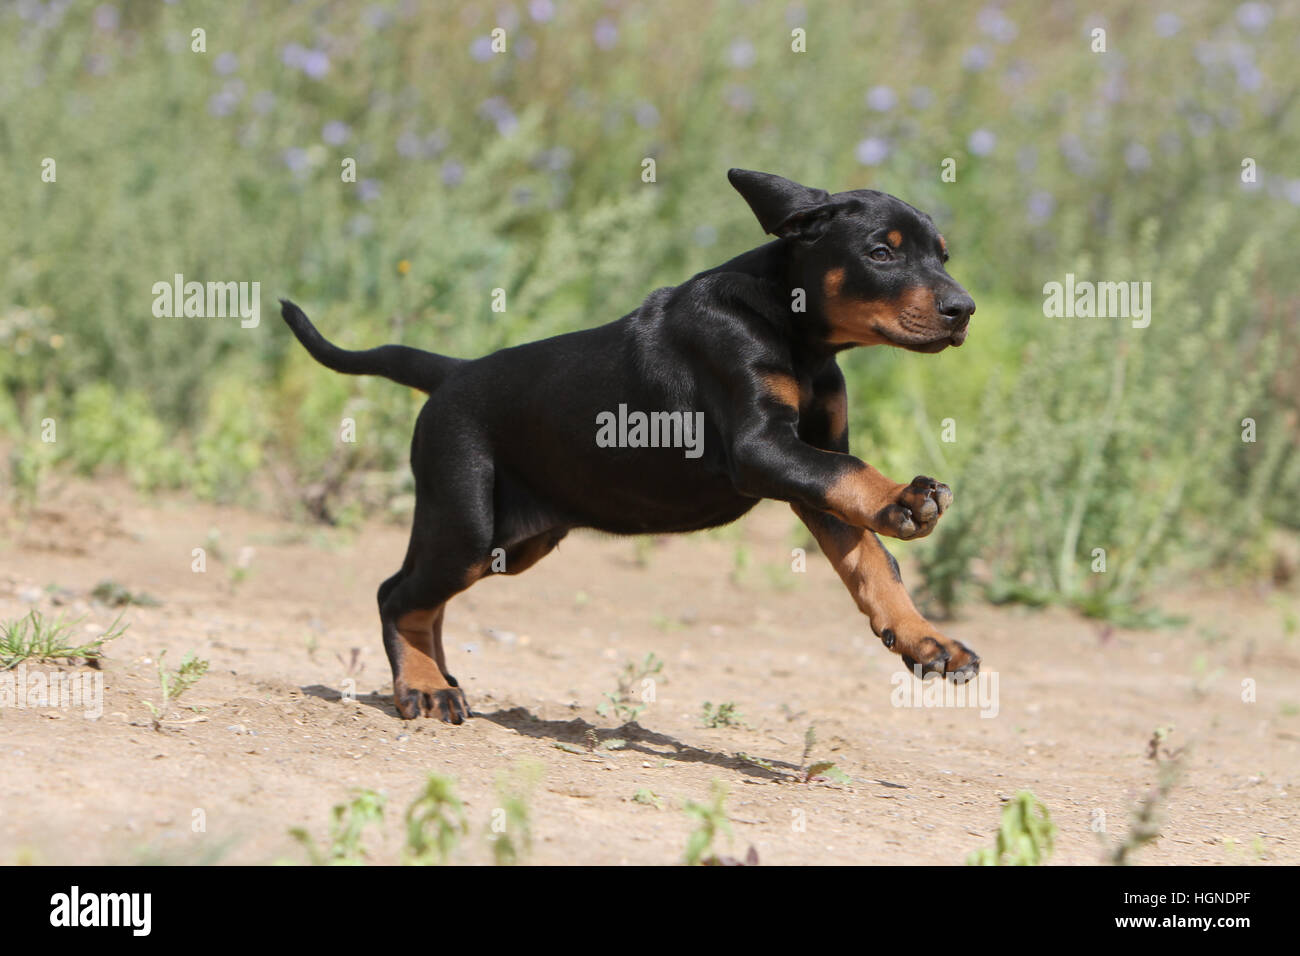 Dog Doberman Pinscher with (natural ears / natural tail) black and tan puppy running - Stock Image